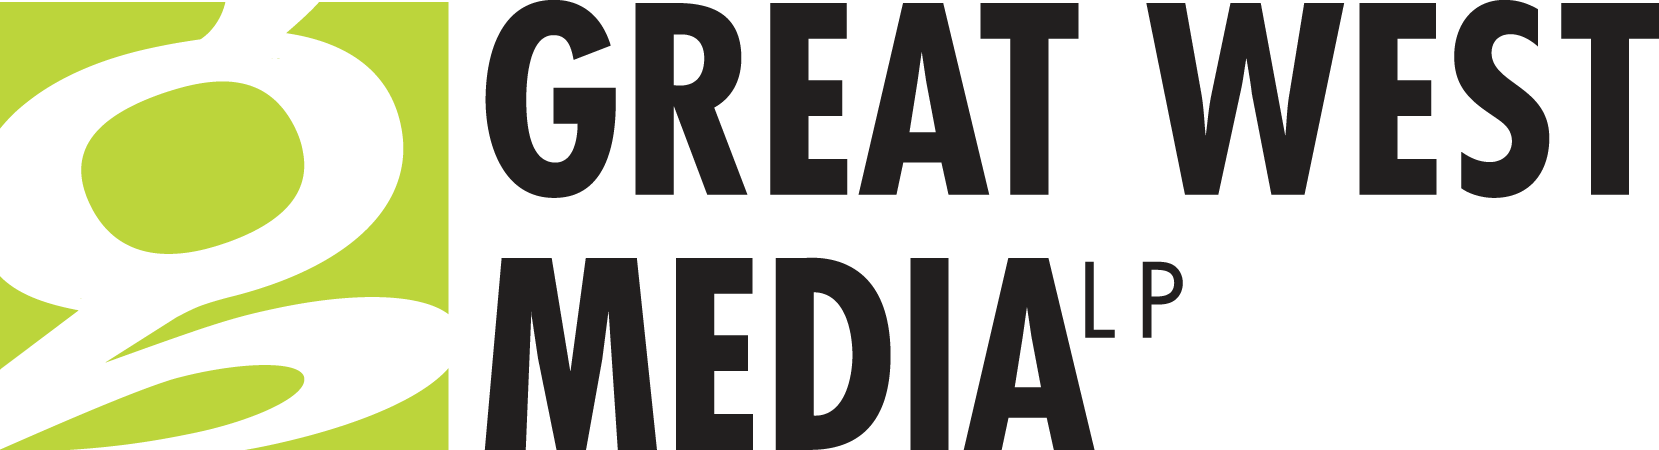 Great West NEWSPAPERS Logo